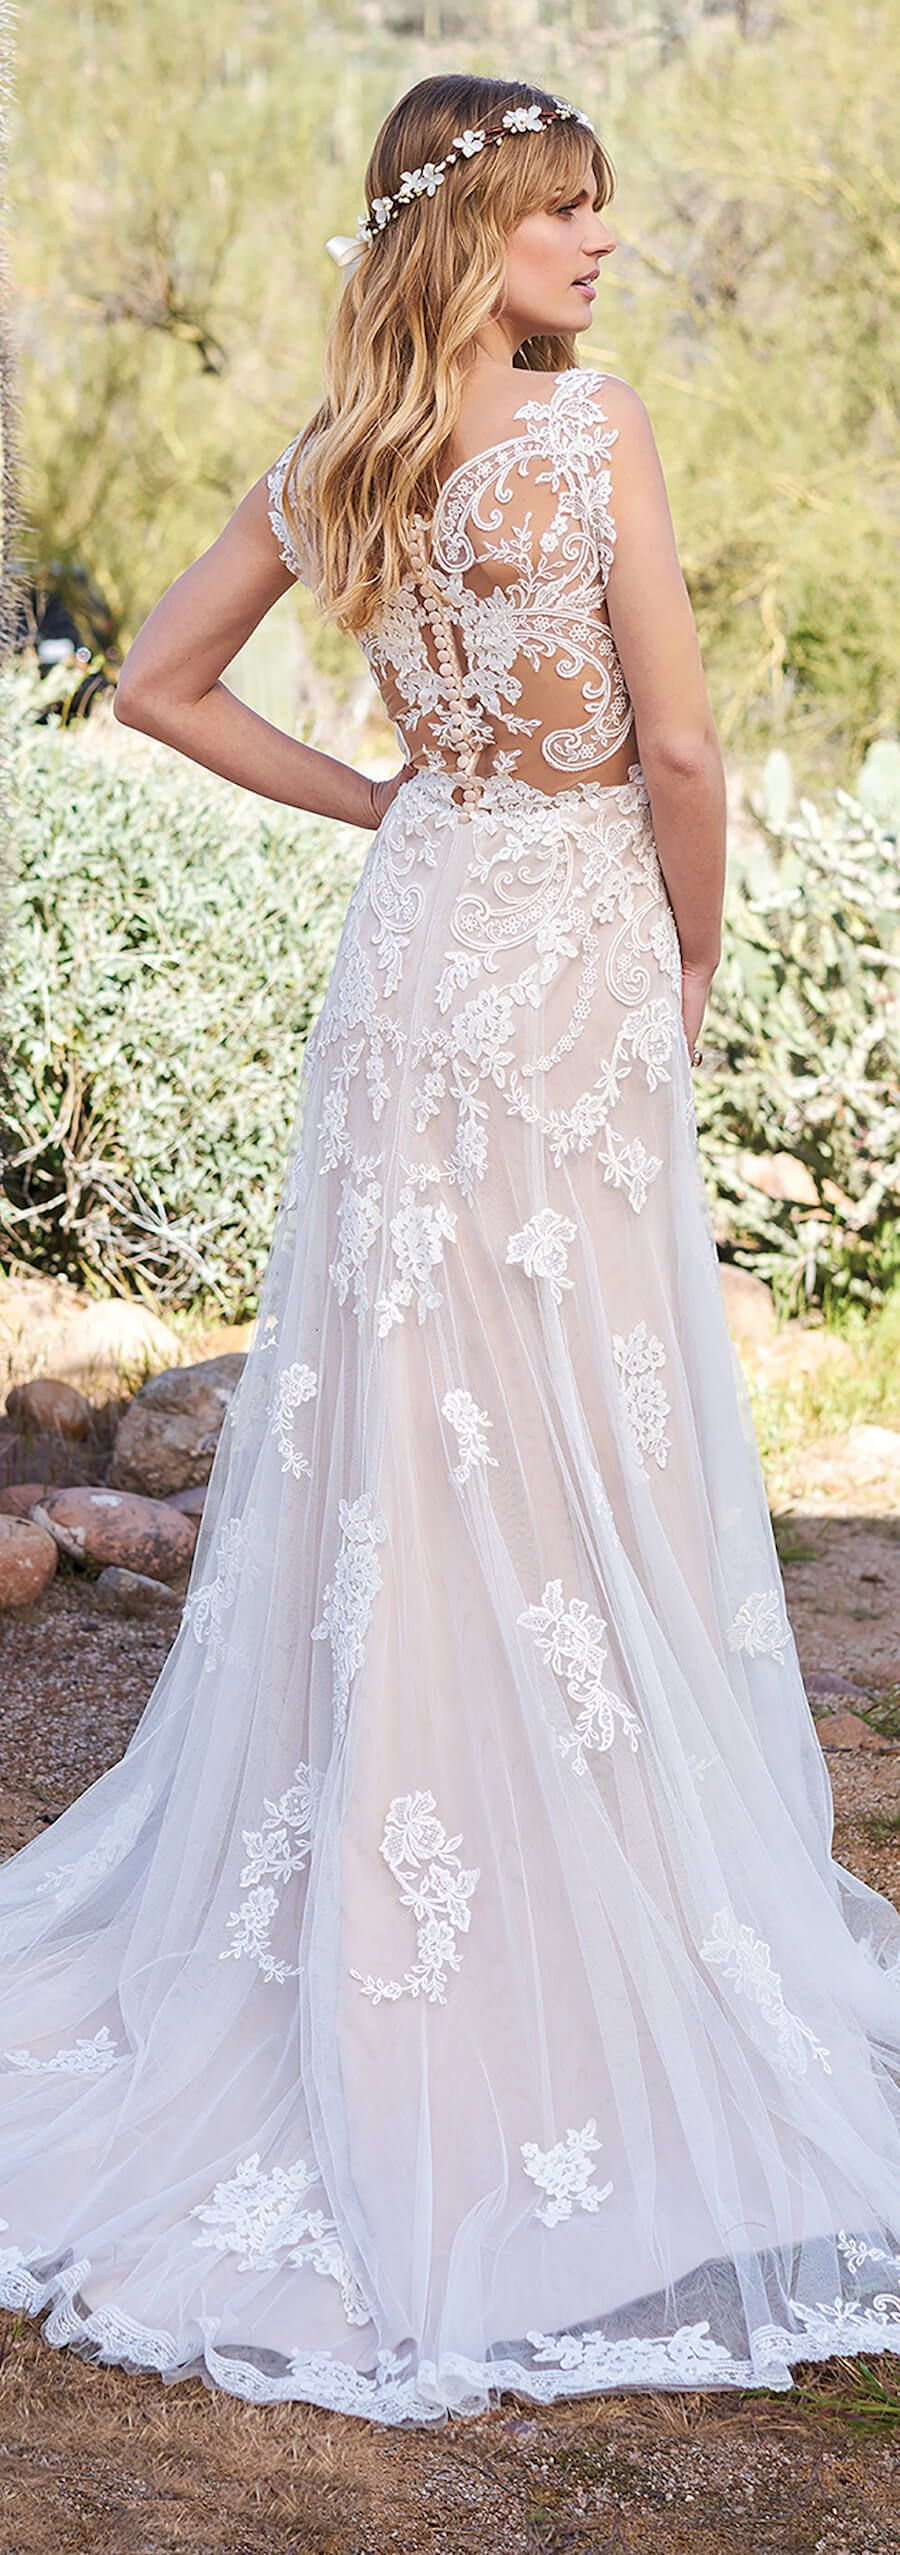 bohemian wedding dresses that will take your breath away